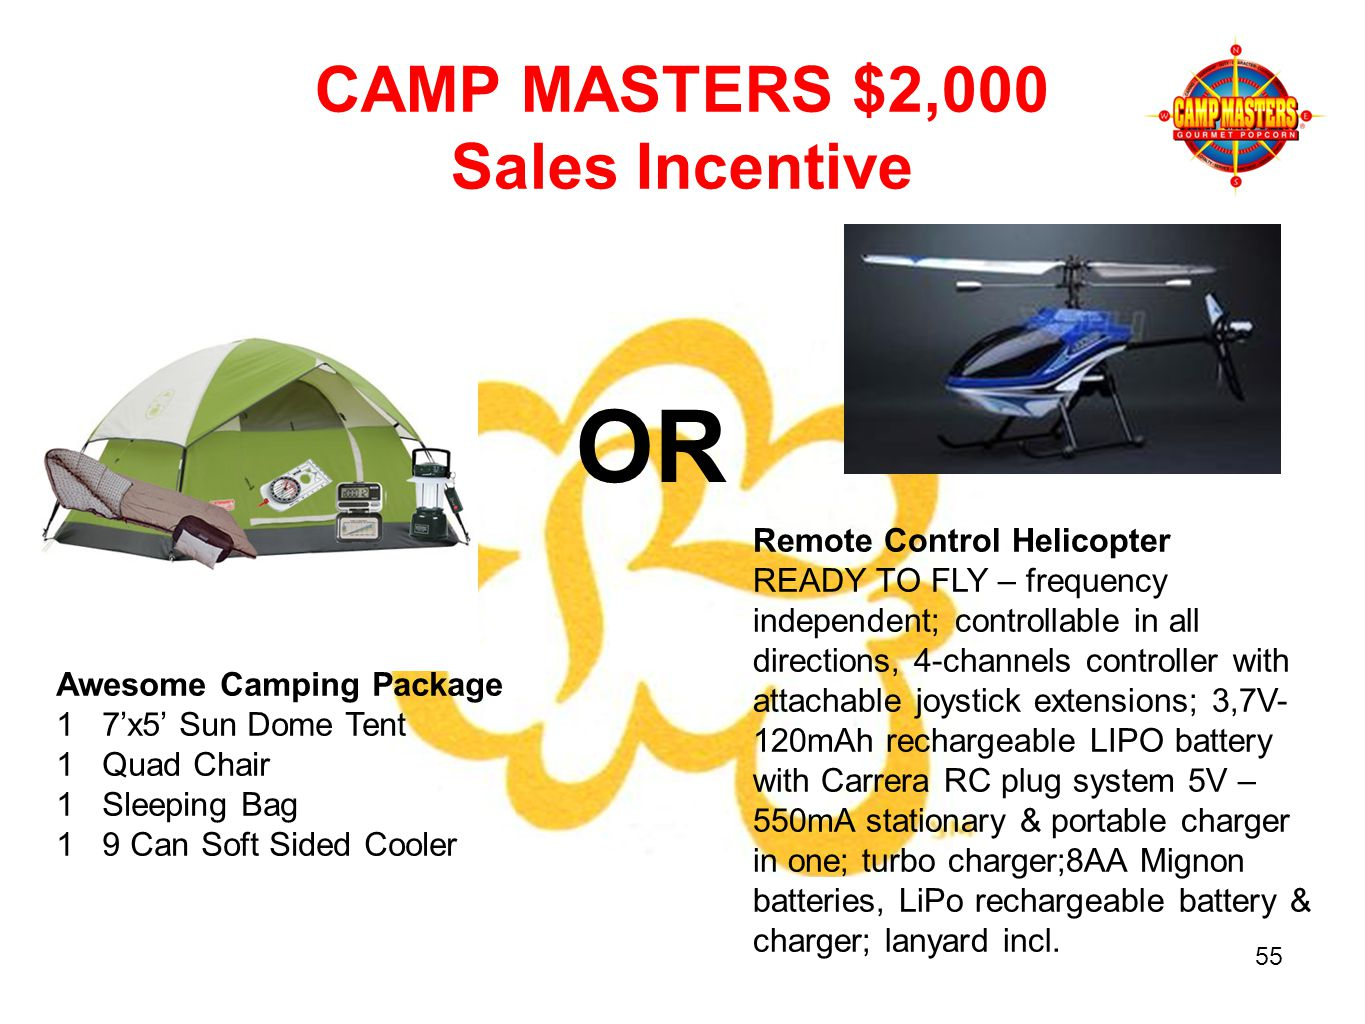 AUGUS Awesome Camping Package 1 7x5 Sun Dome Tent 1 Quad Chair 1 Sleeping Bag 1 9 Can Soft Sided Cooler CAMP MASTERS $2,000 Sales Incentive OR Remote Control Helicopter READY TO FLY – frequency independent; controllable in all directions, 4-channels controller with attachable joystick extensions; 3,7V- 120mAh rechargeable LIPO battery with Carrera RC plug system 5V – 550mA stationary & portable charger in one; turbo charger;8AA Mignon batteries, LiPo rechargeable battery & charger; lanyard incl.